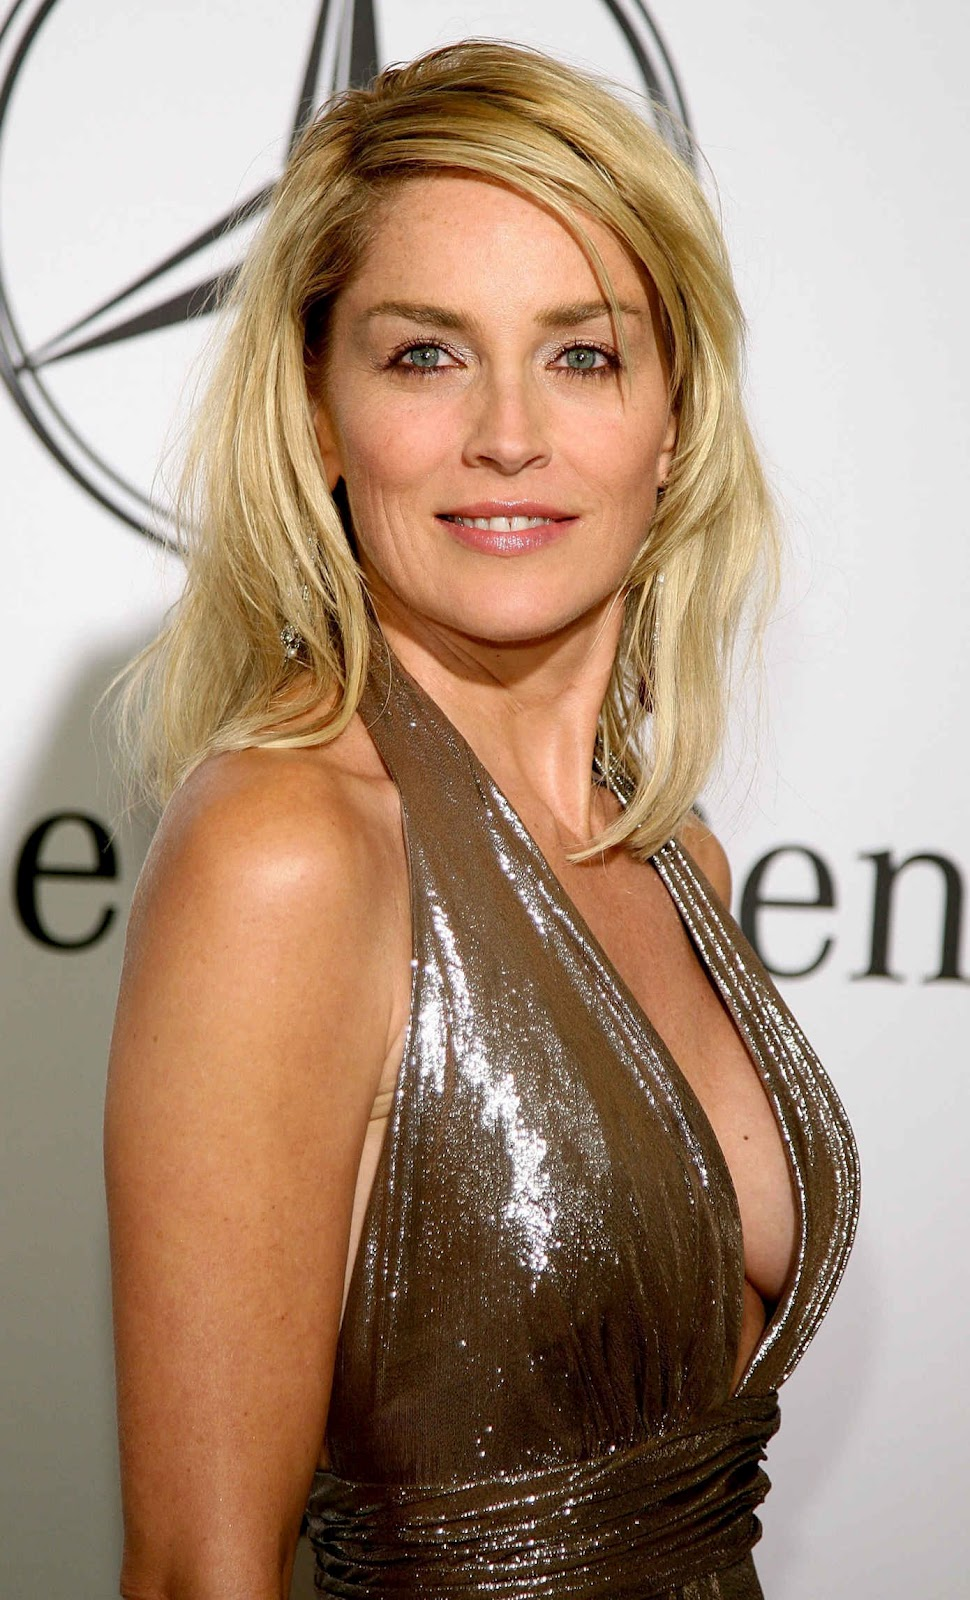 Sharon Stone Hd Wallpapers High Definition Free